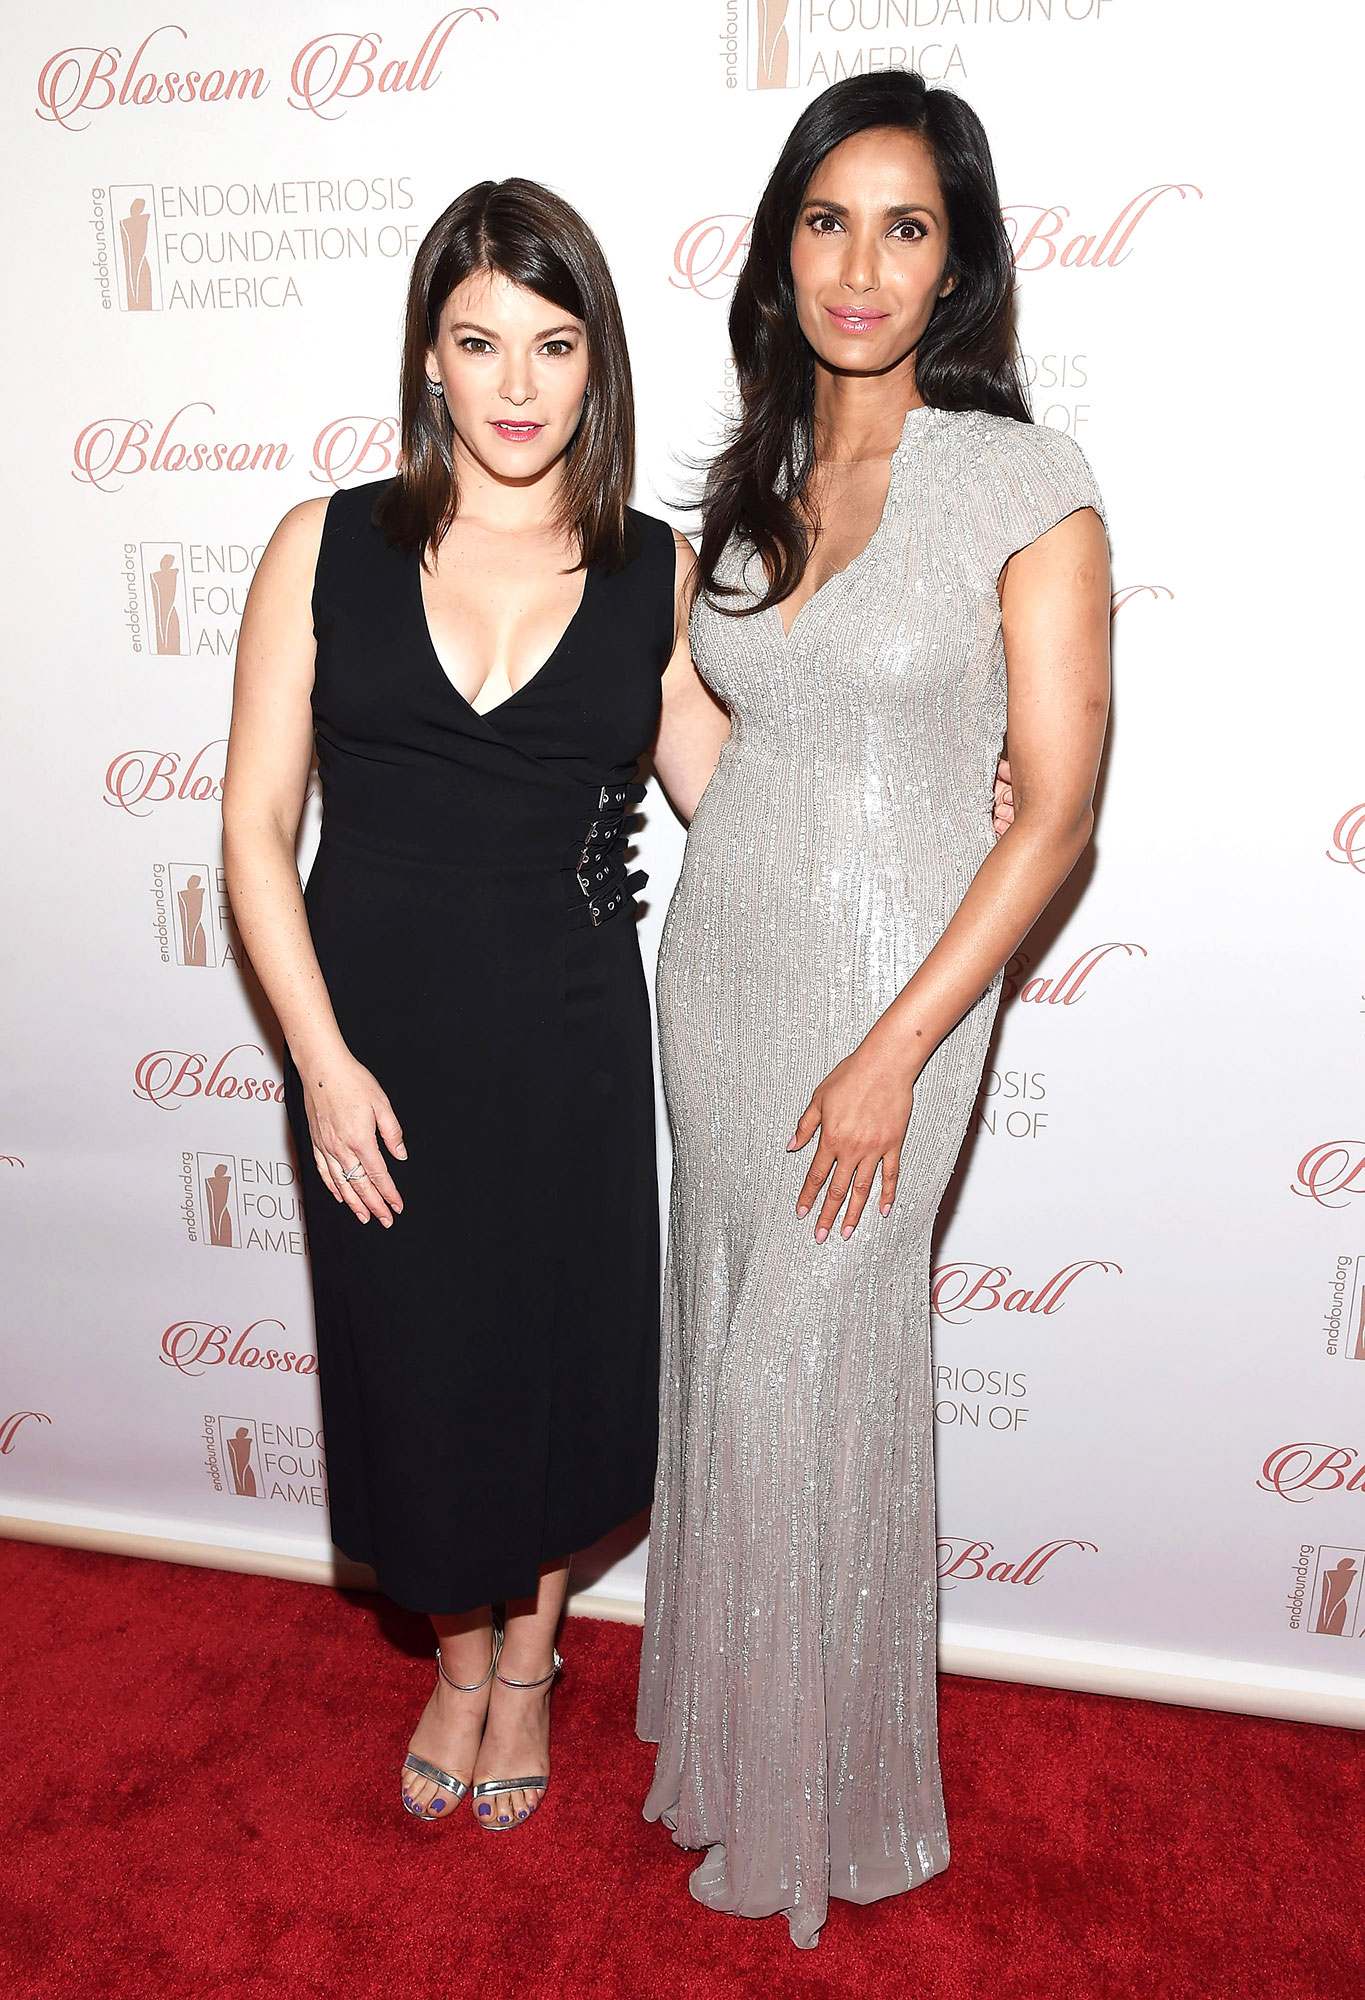 Padma Lakshmi and Gail Simmons